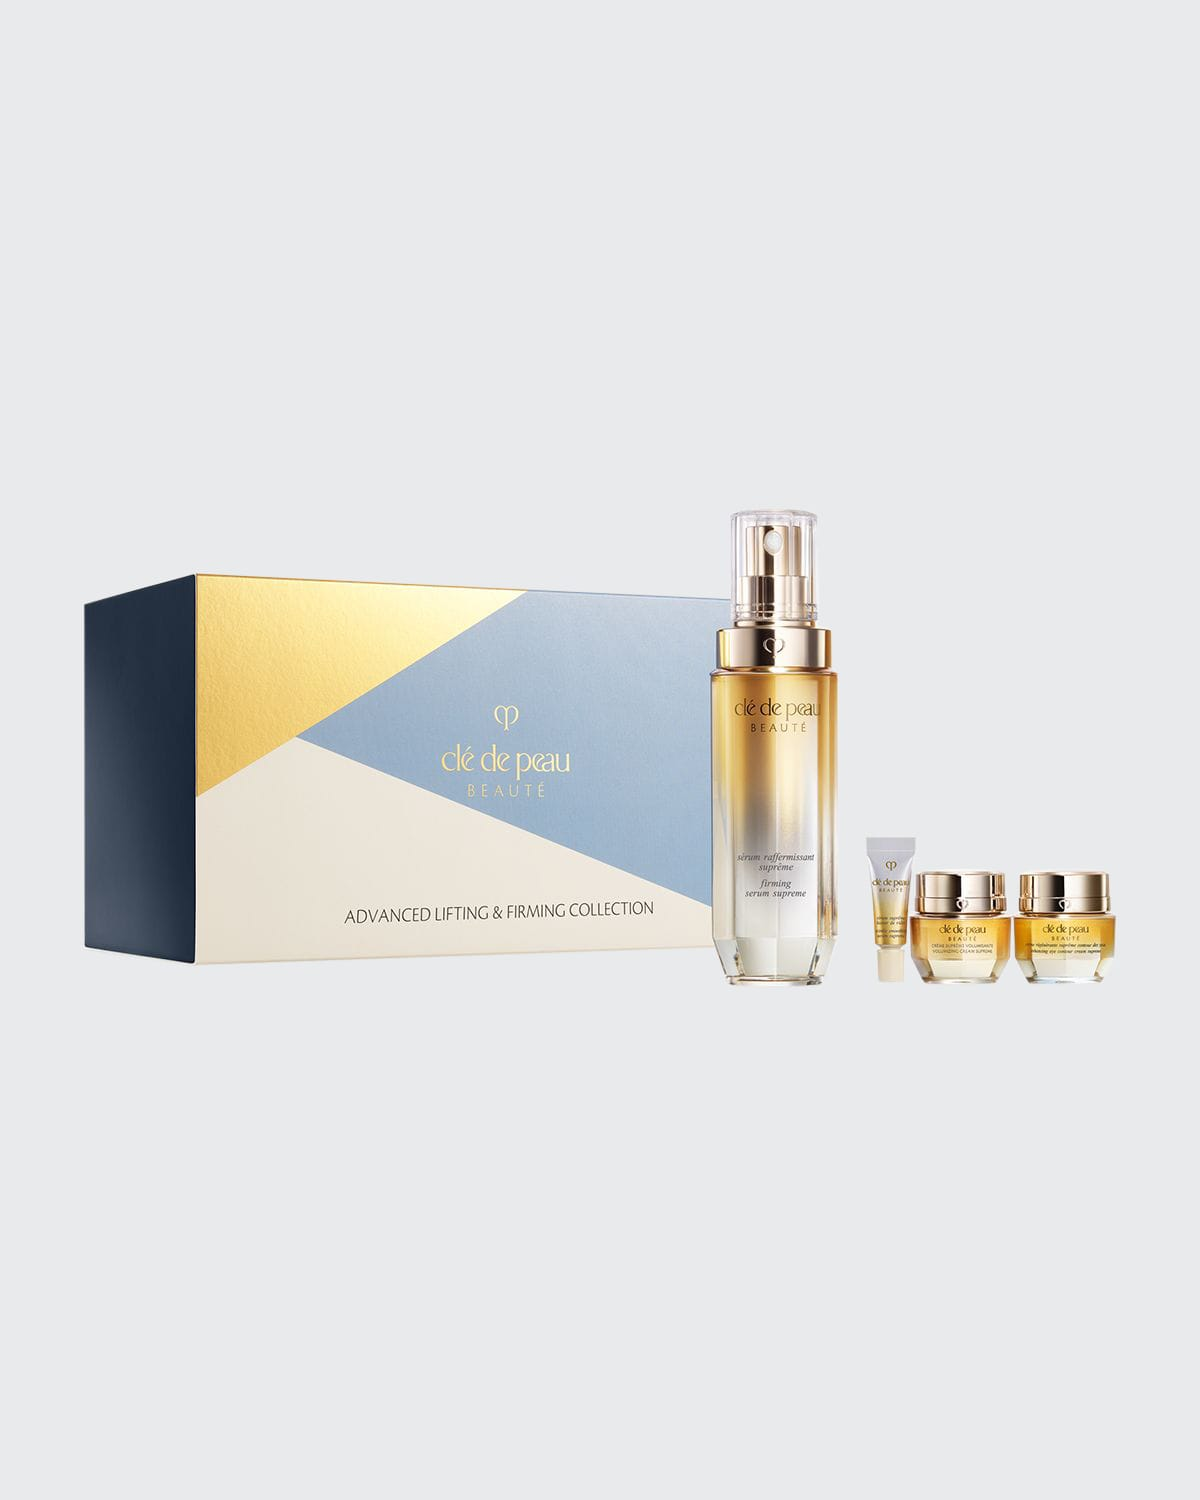 Advanced Lifting & Firming Collection